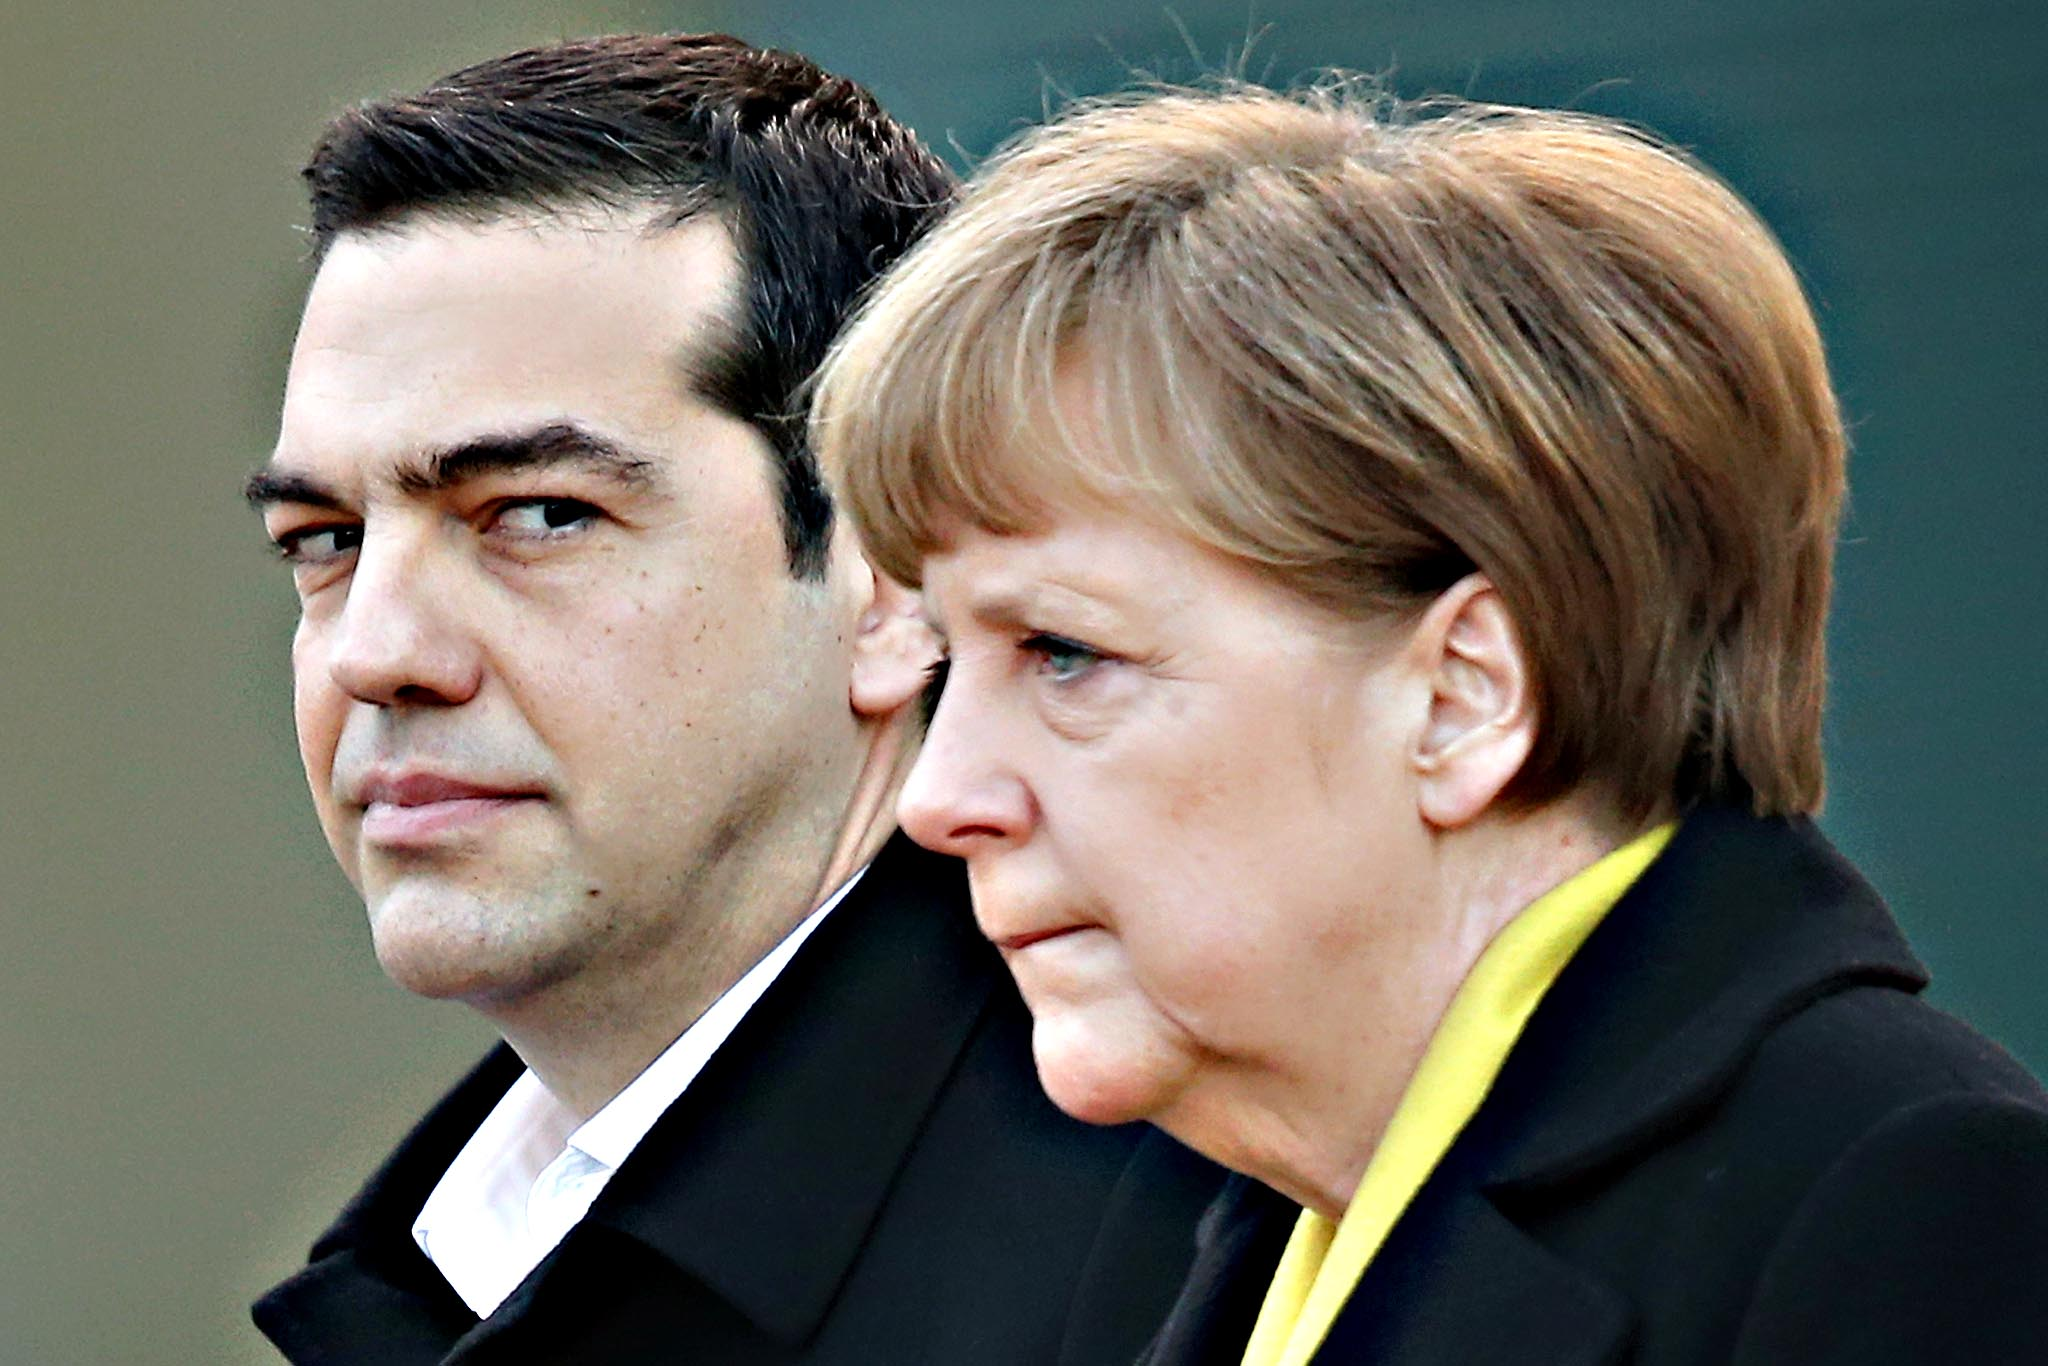 German Chancellor Angela Merkel and Greek Prime Minister Alexis Tsipras listen to their countries' national anthems upon his arrival for talks at the Chancellery on March 23, 2015 in Berlin, Germany. The two leaders are meeting as relations between the Tsipras government and Germany have soured amidst contrary views between the two countries on how Greece can best work itself out of its current economic morass.